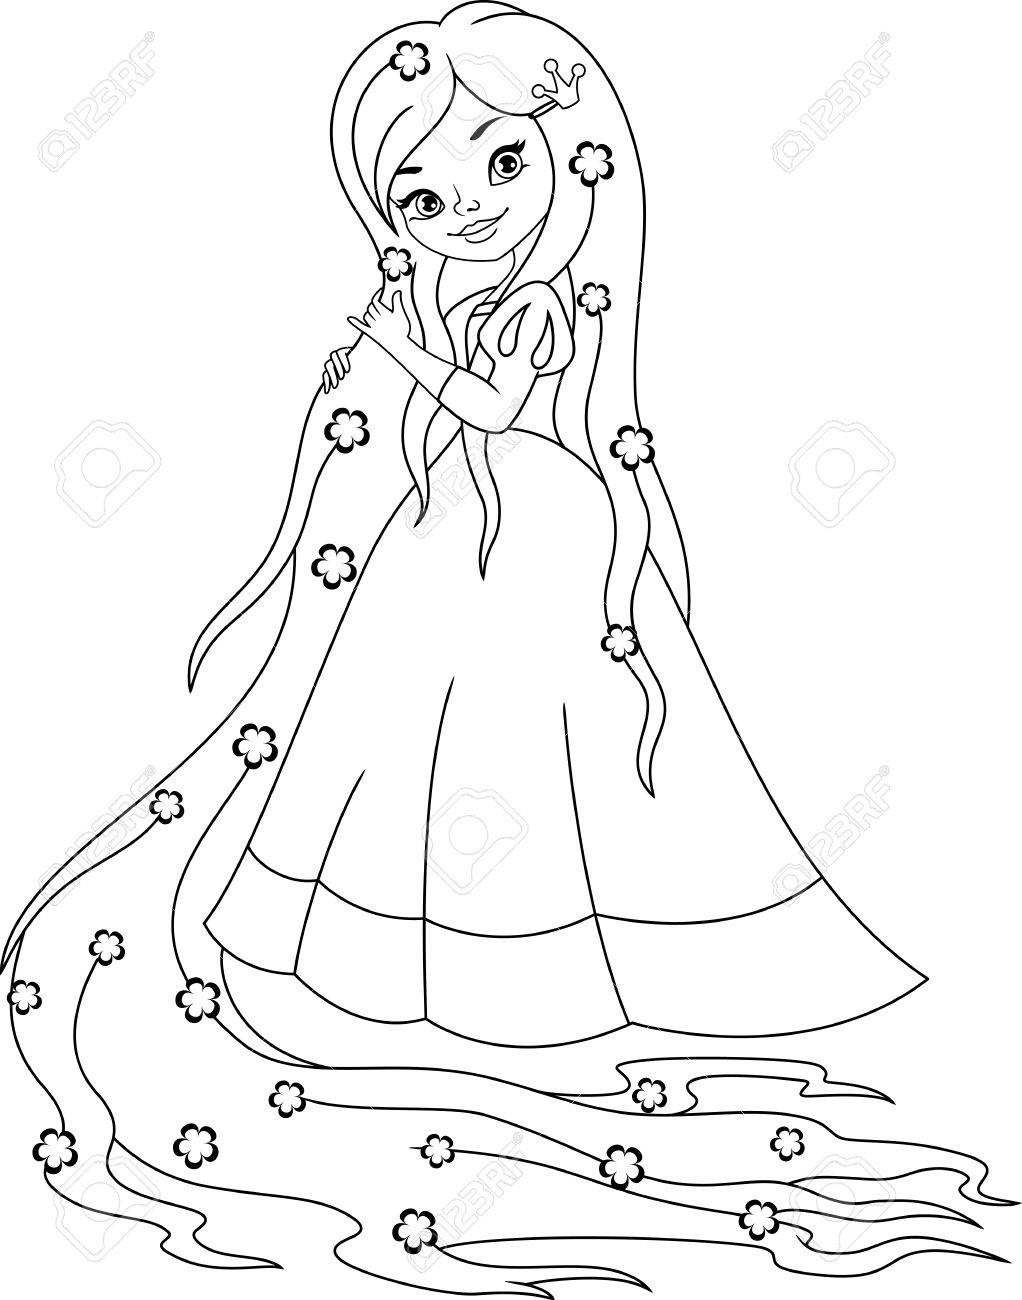 Princess Rapunzel Coloring Page Royalty Free Cliparts Vectors And